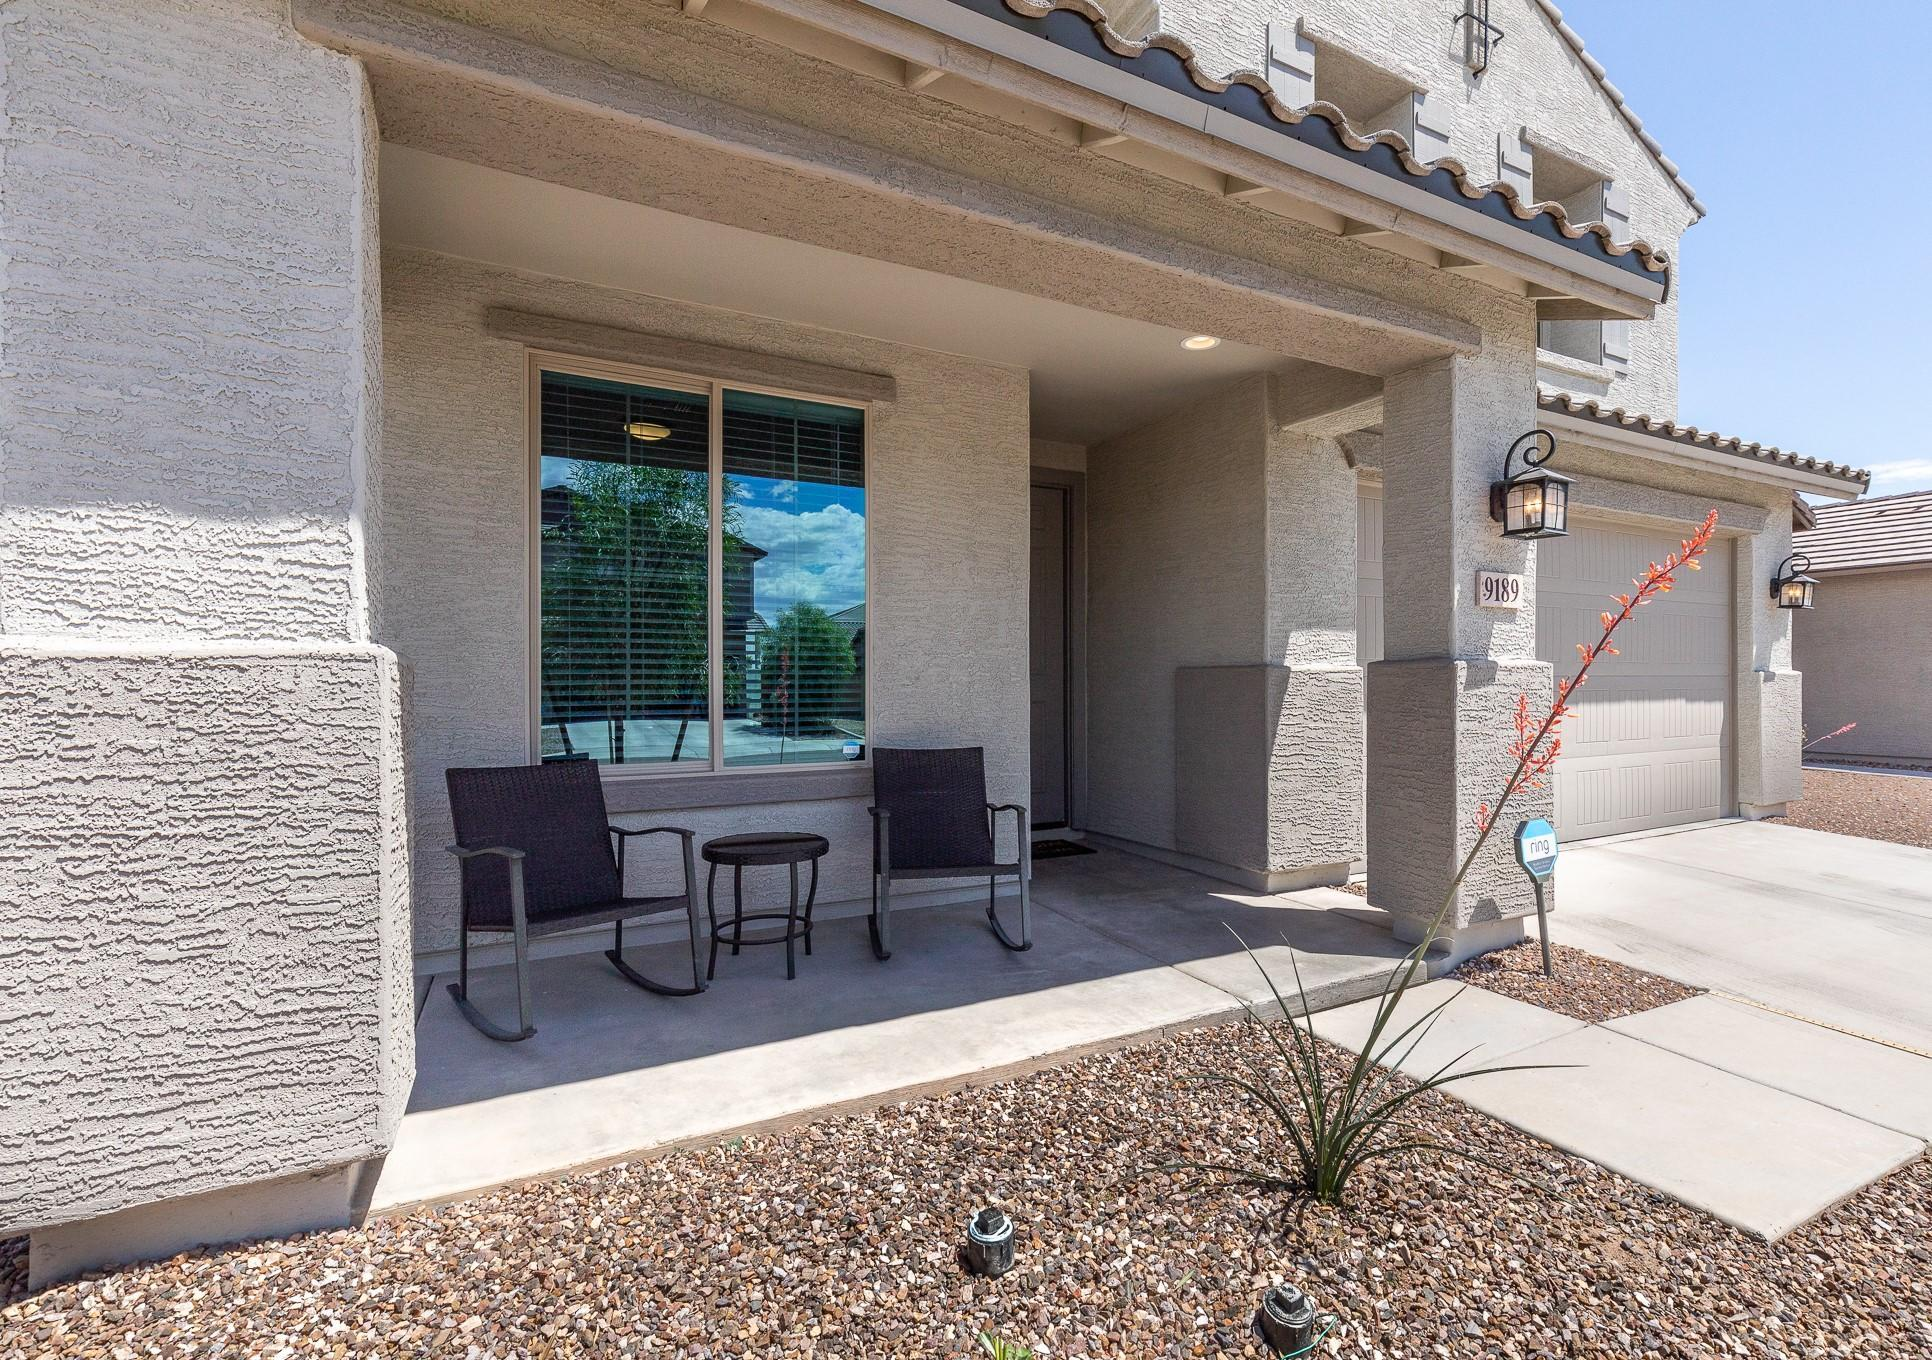 9189 98TH Avenue, Peoria, Arizona 85345, 4 Bedrooms Bedrooms, ,3 BathroomsBathrooms,Residential,For Sale,98TH,6230079